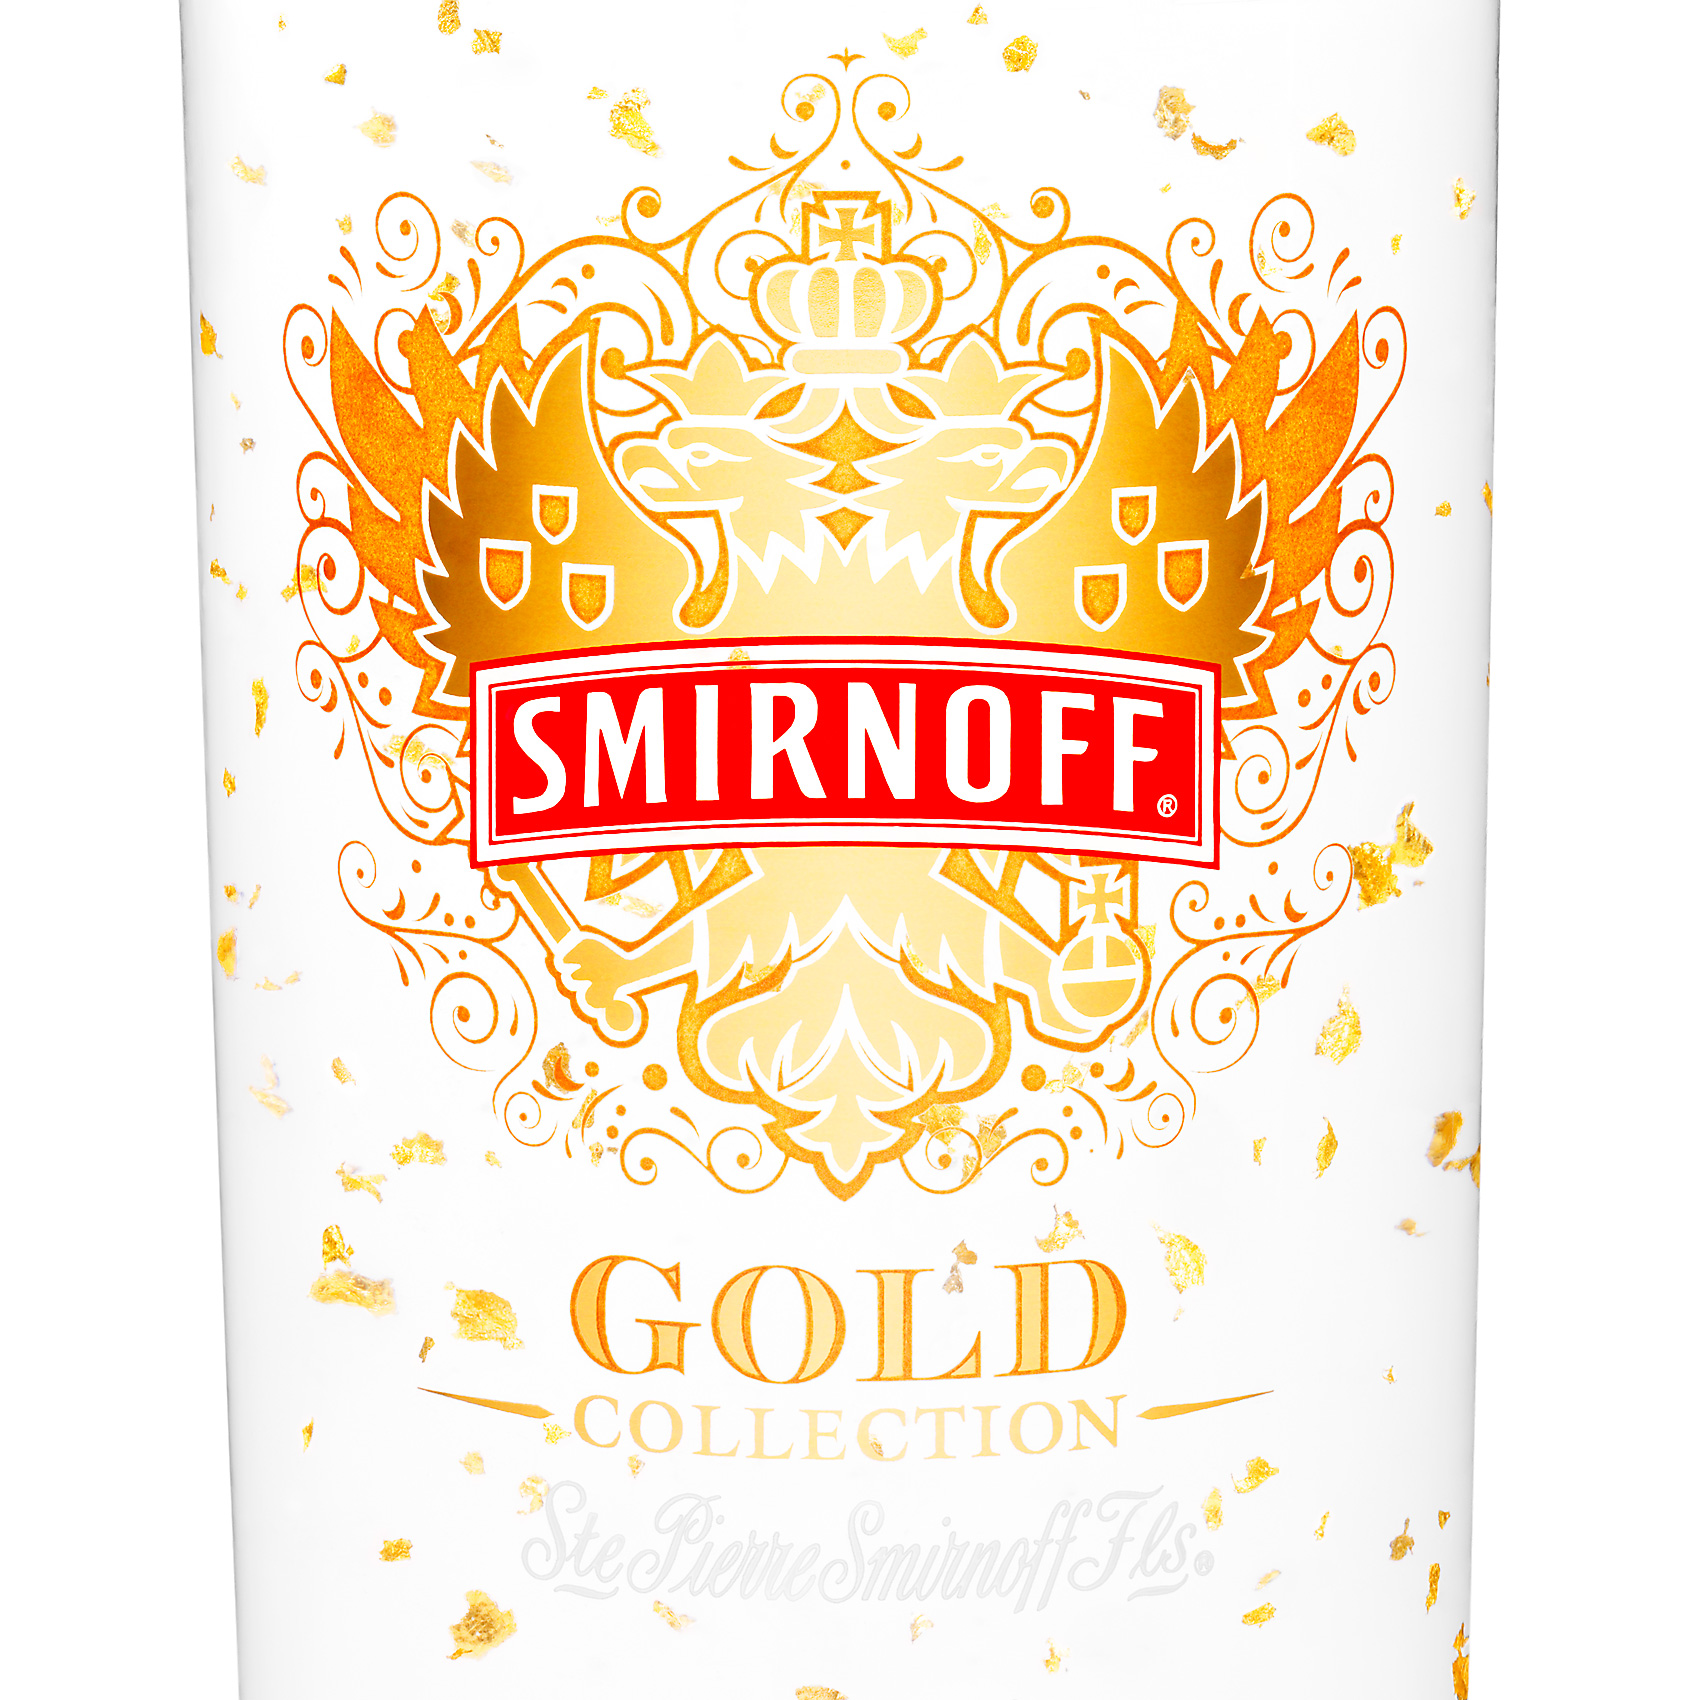 Nick_Rees-Drinks-SMIRNOFF_GOLD-macro